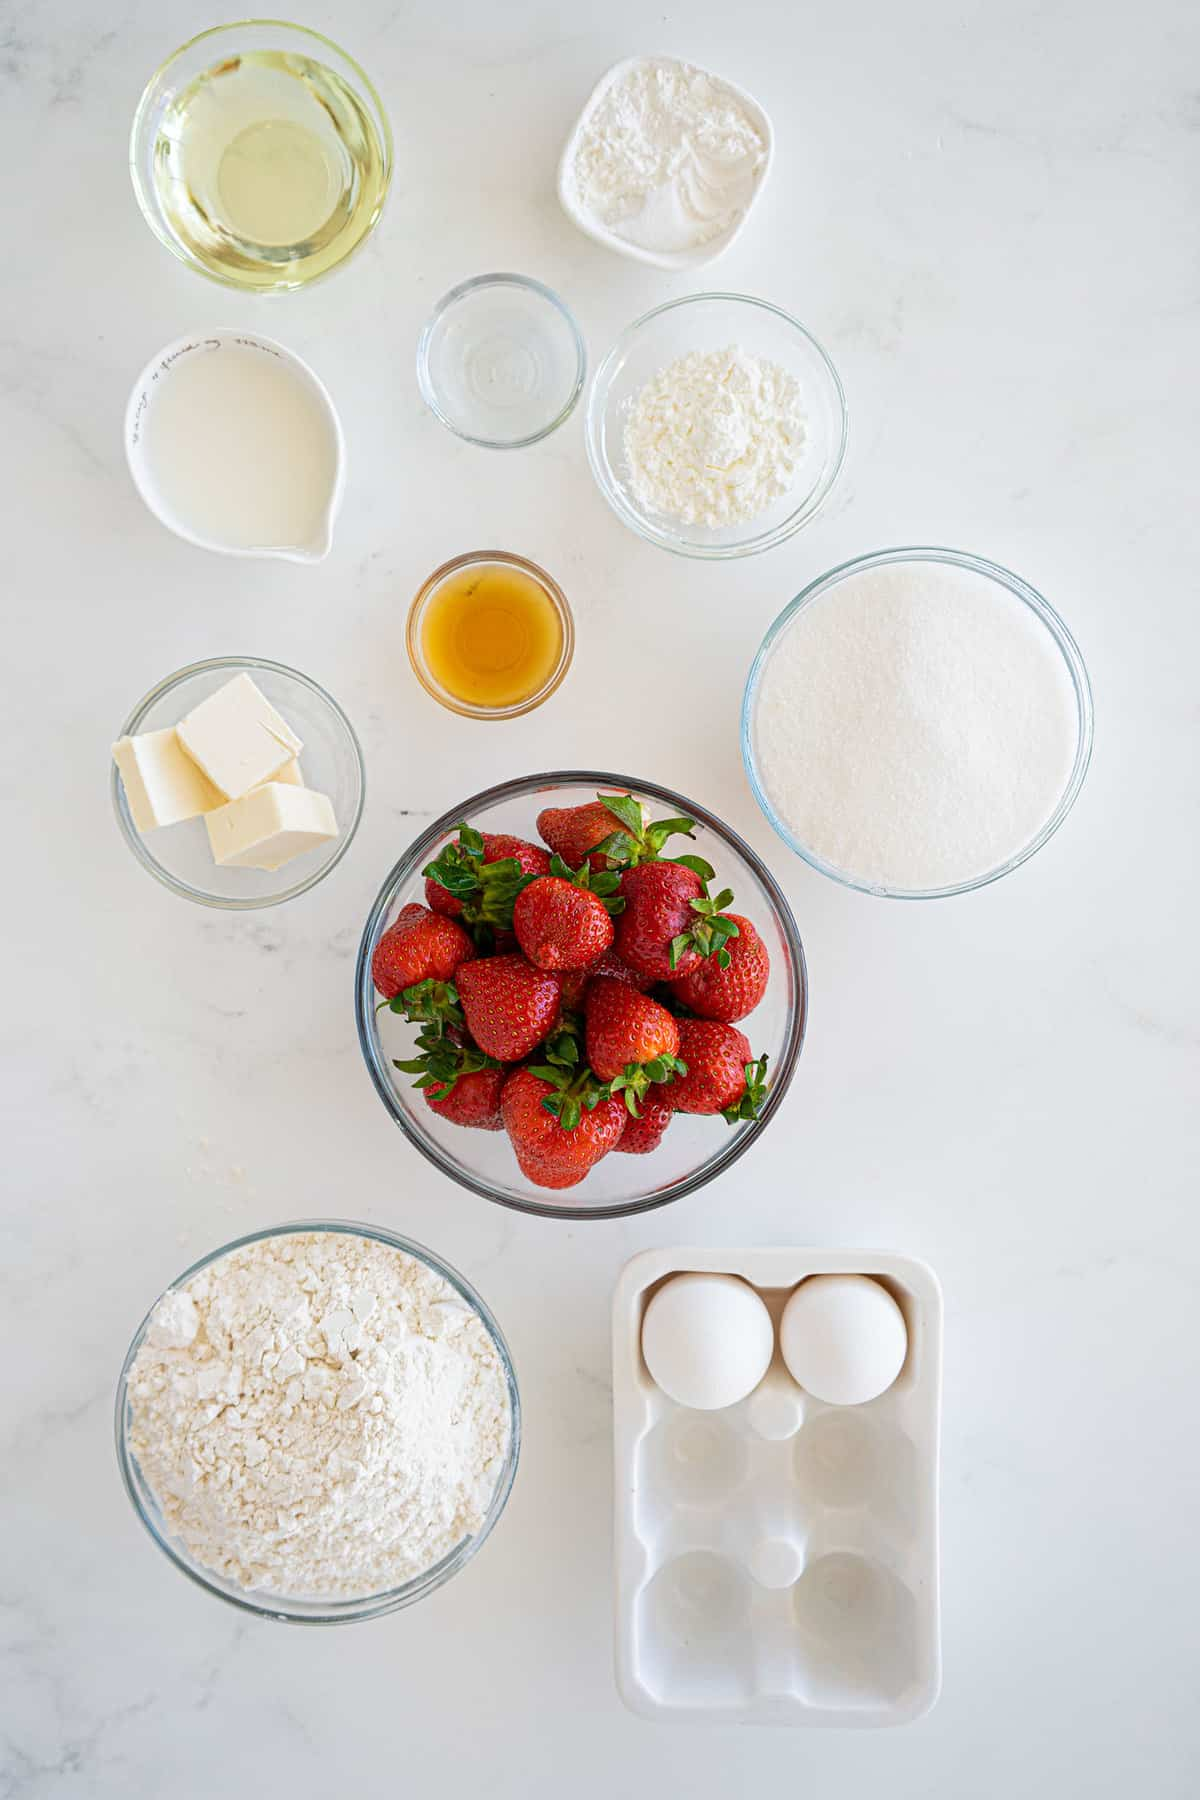 ingredients for strawberry muffins